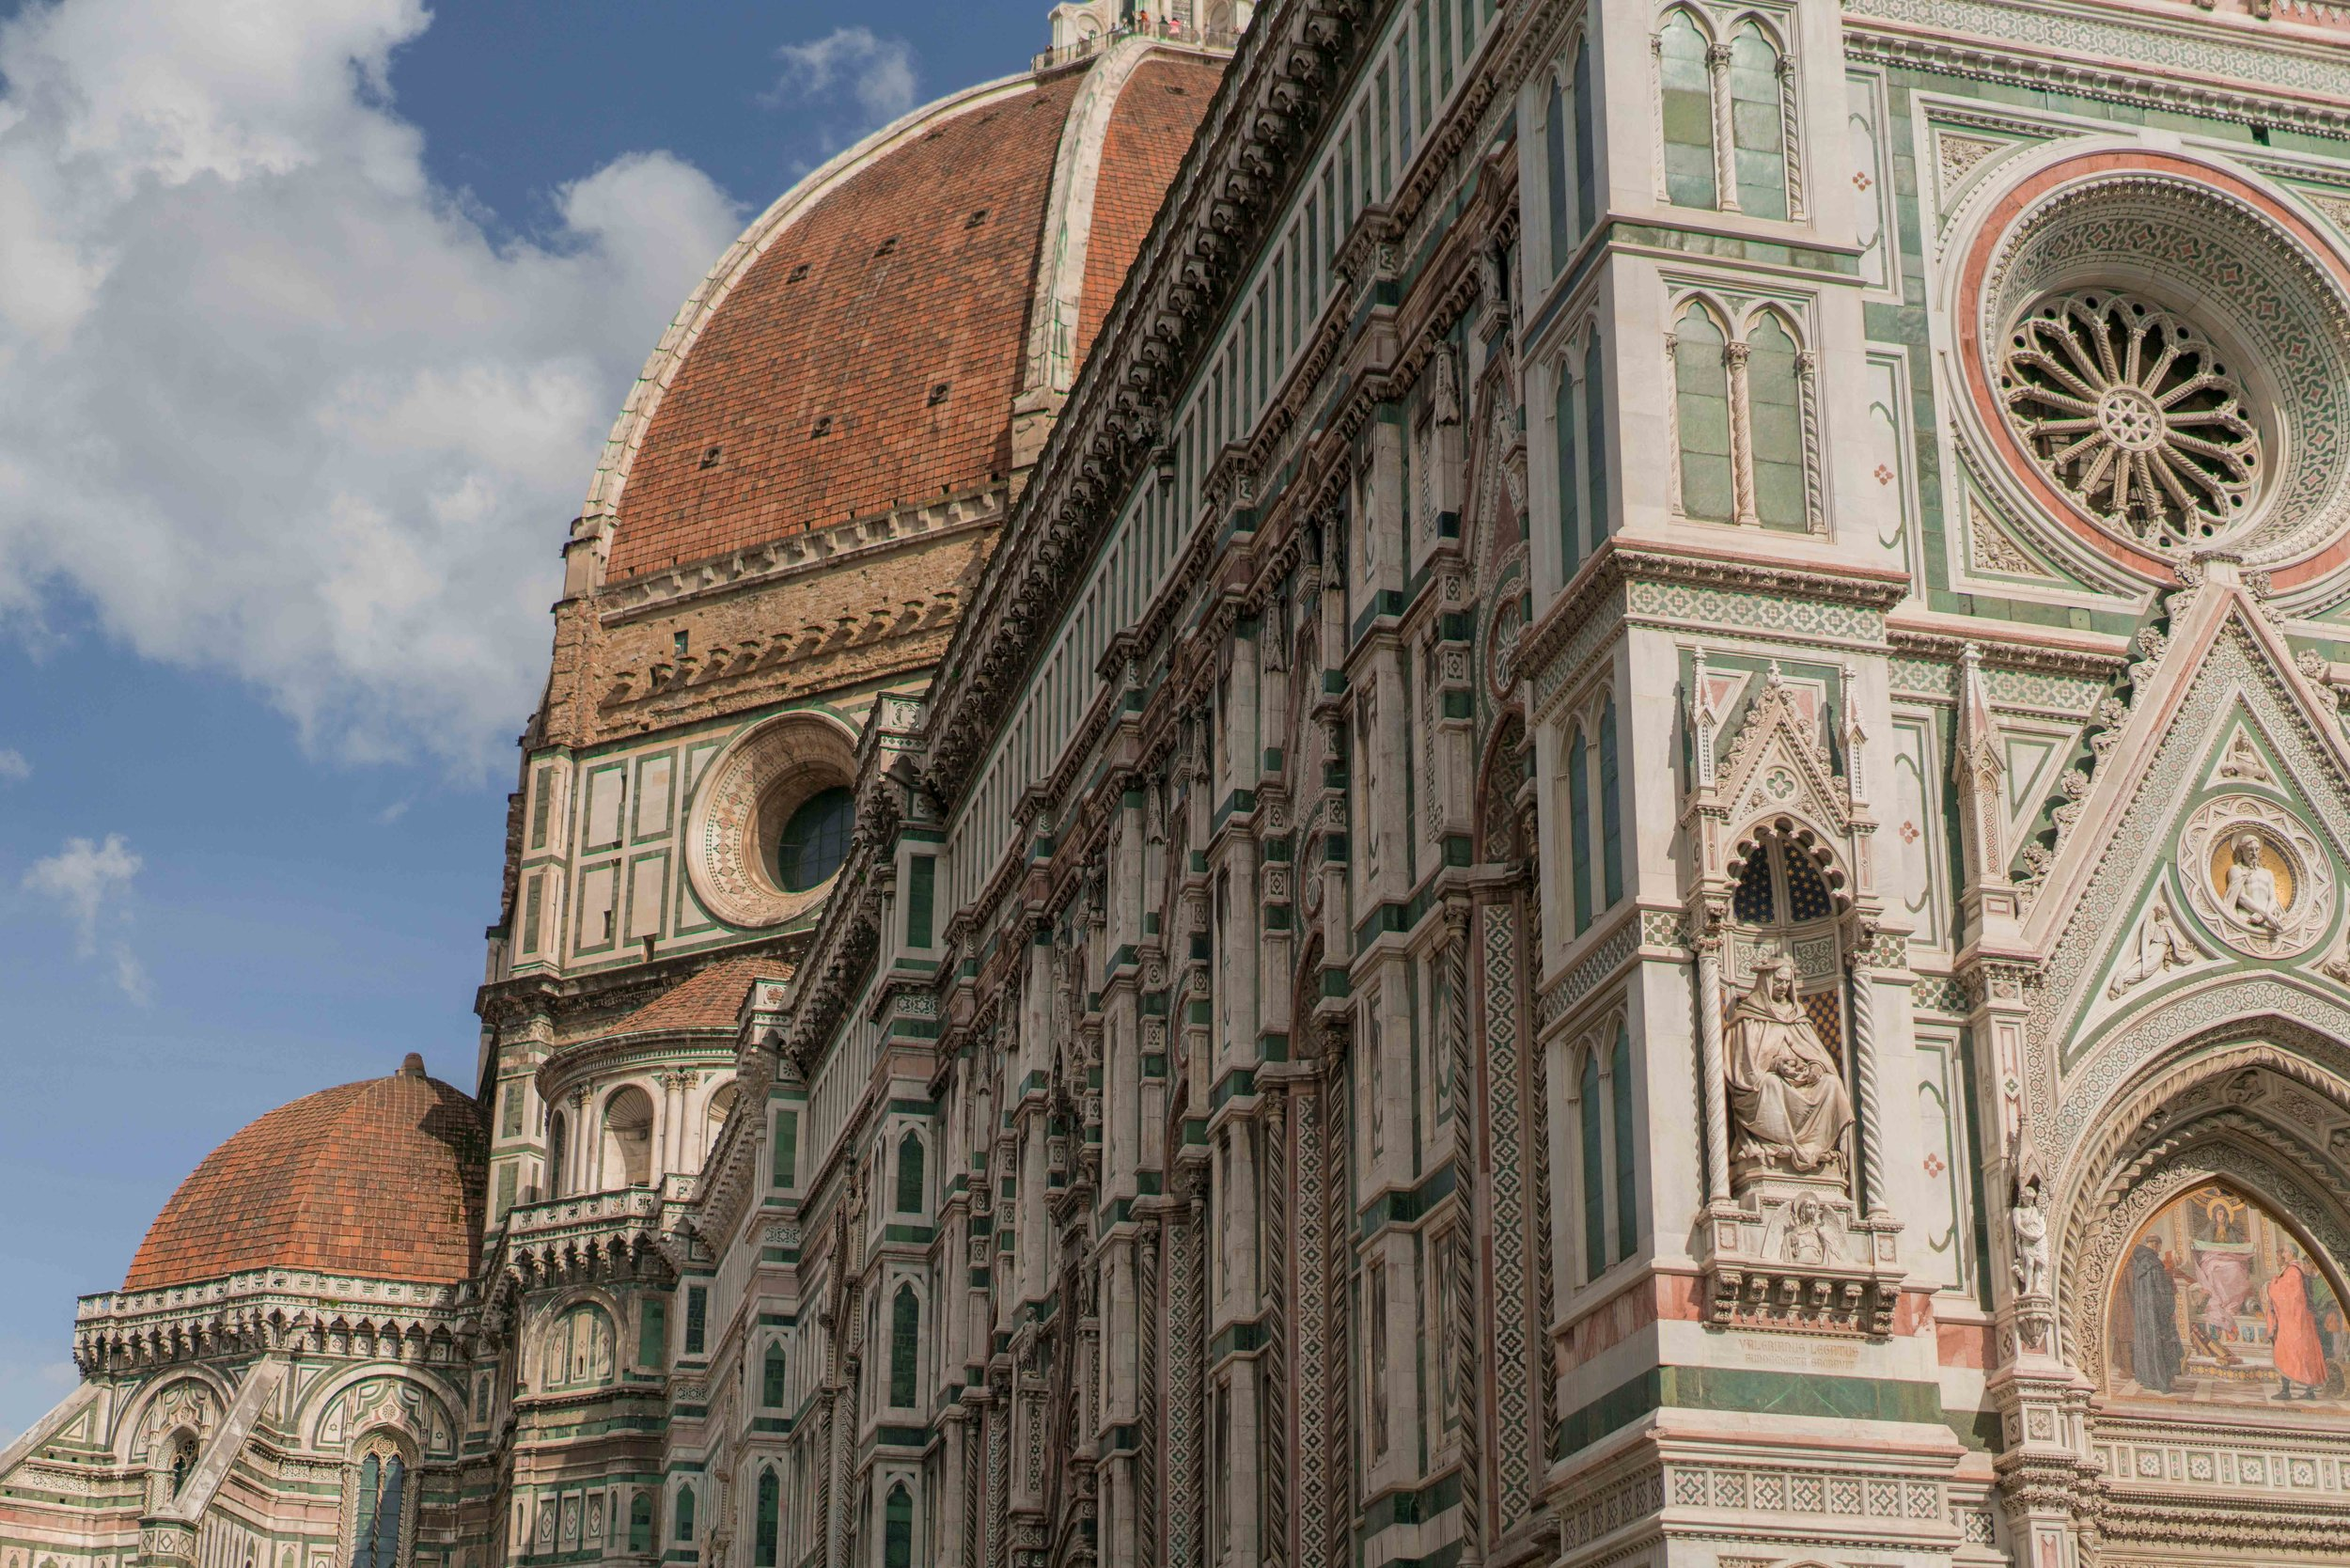 Holiday in Italy - Day 4 Florence - Sony A7R2 -- 15.jpg